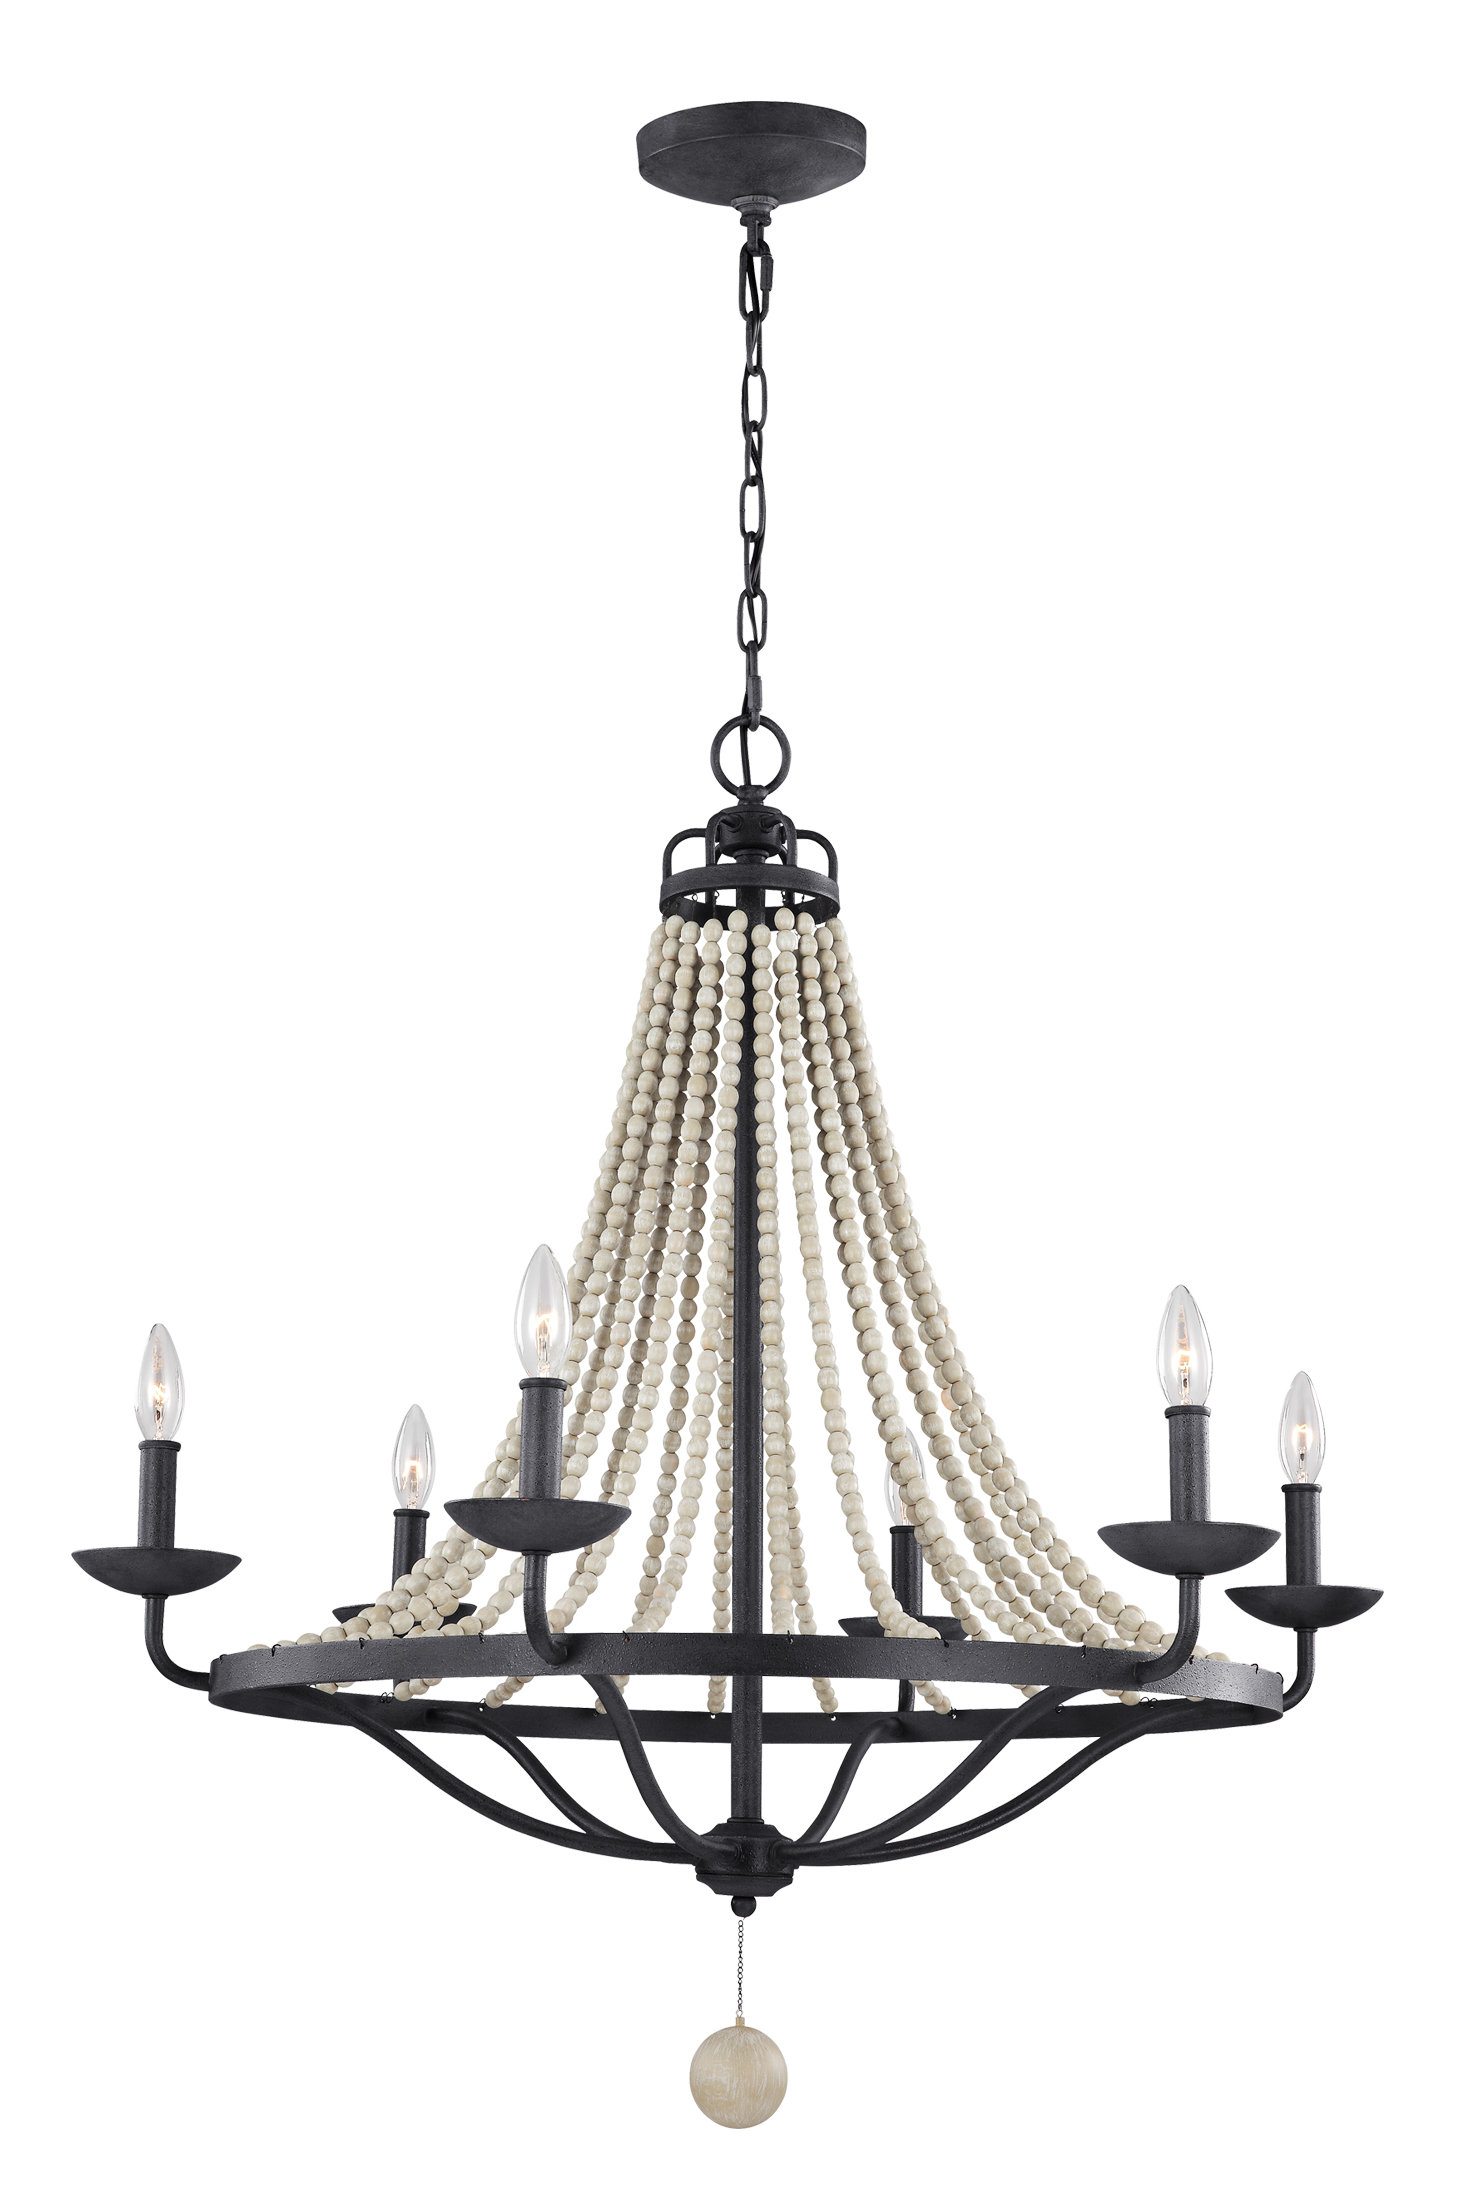 Diaz 6-Light Candle Style Chandeliers intended for Favorite Granger 6-Light Empire Chandelier